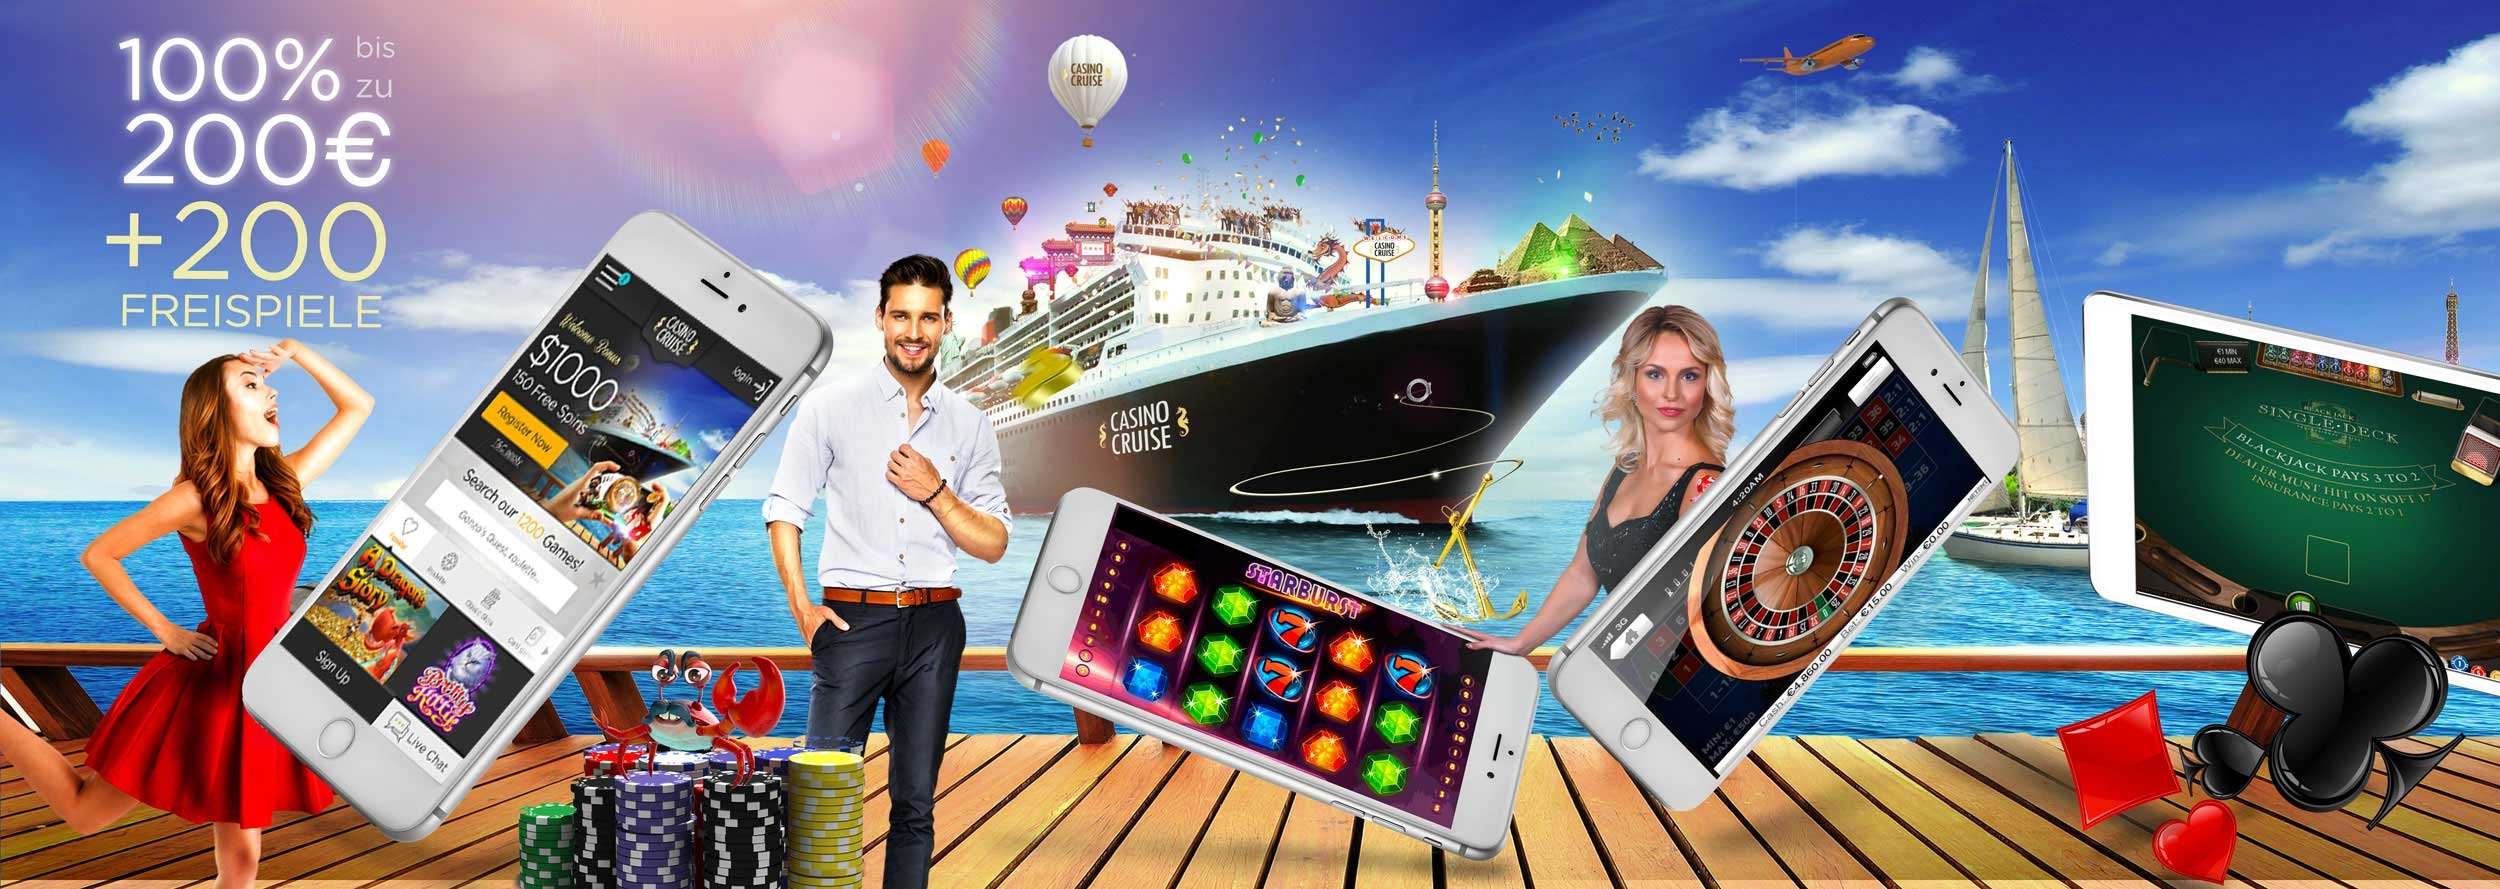 CasinoCruise mobile app